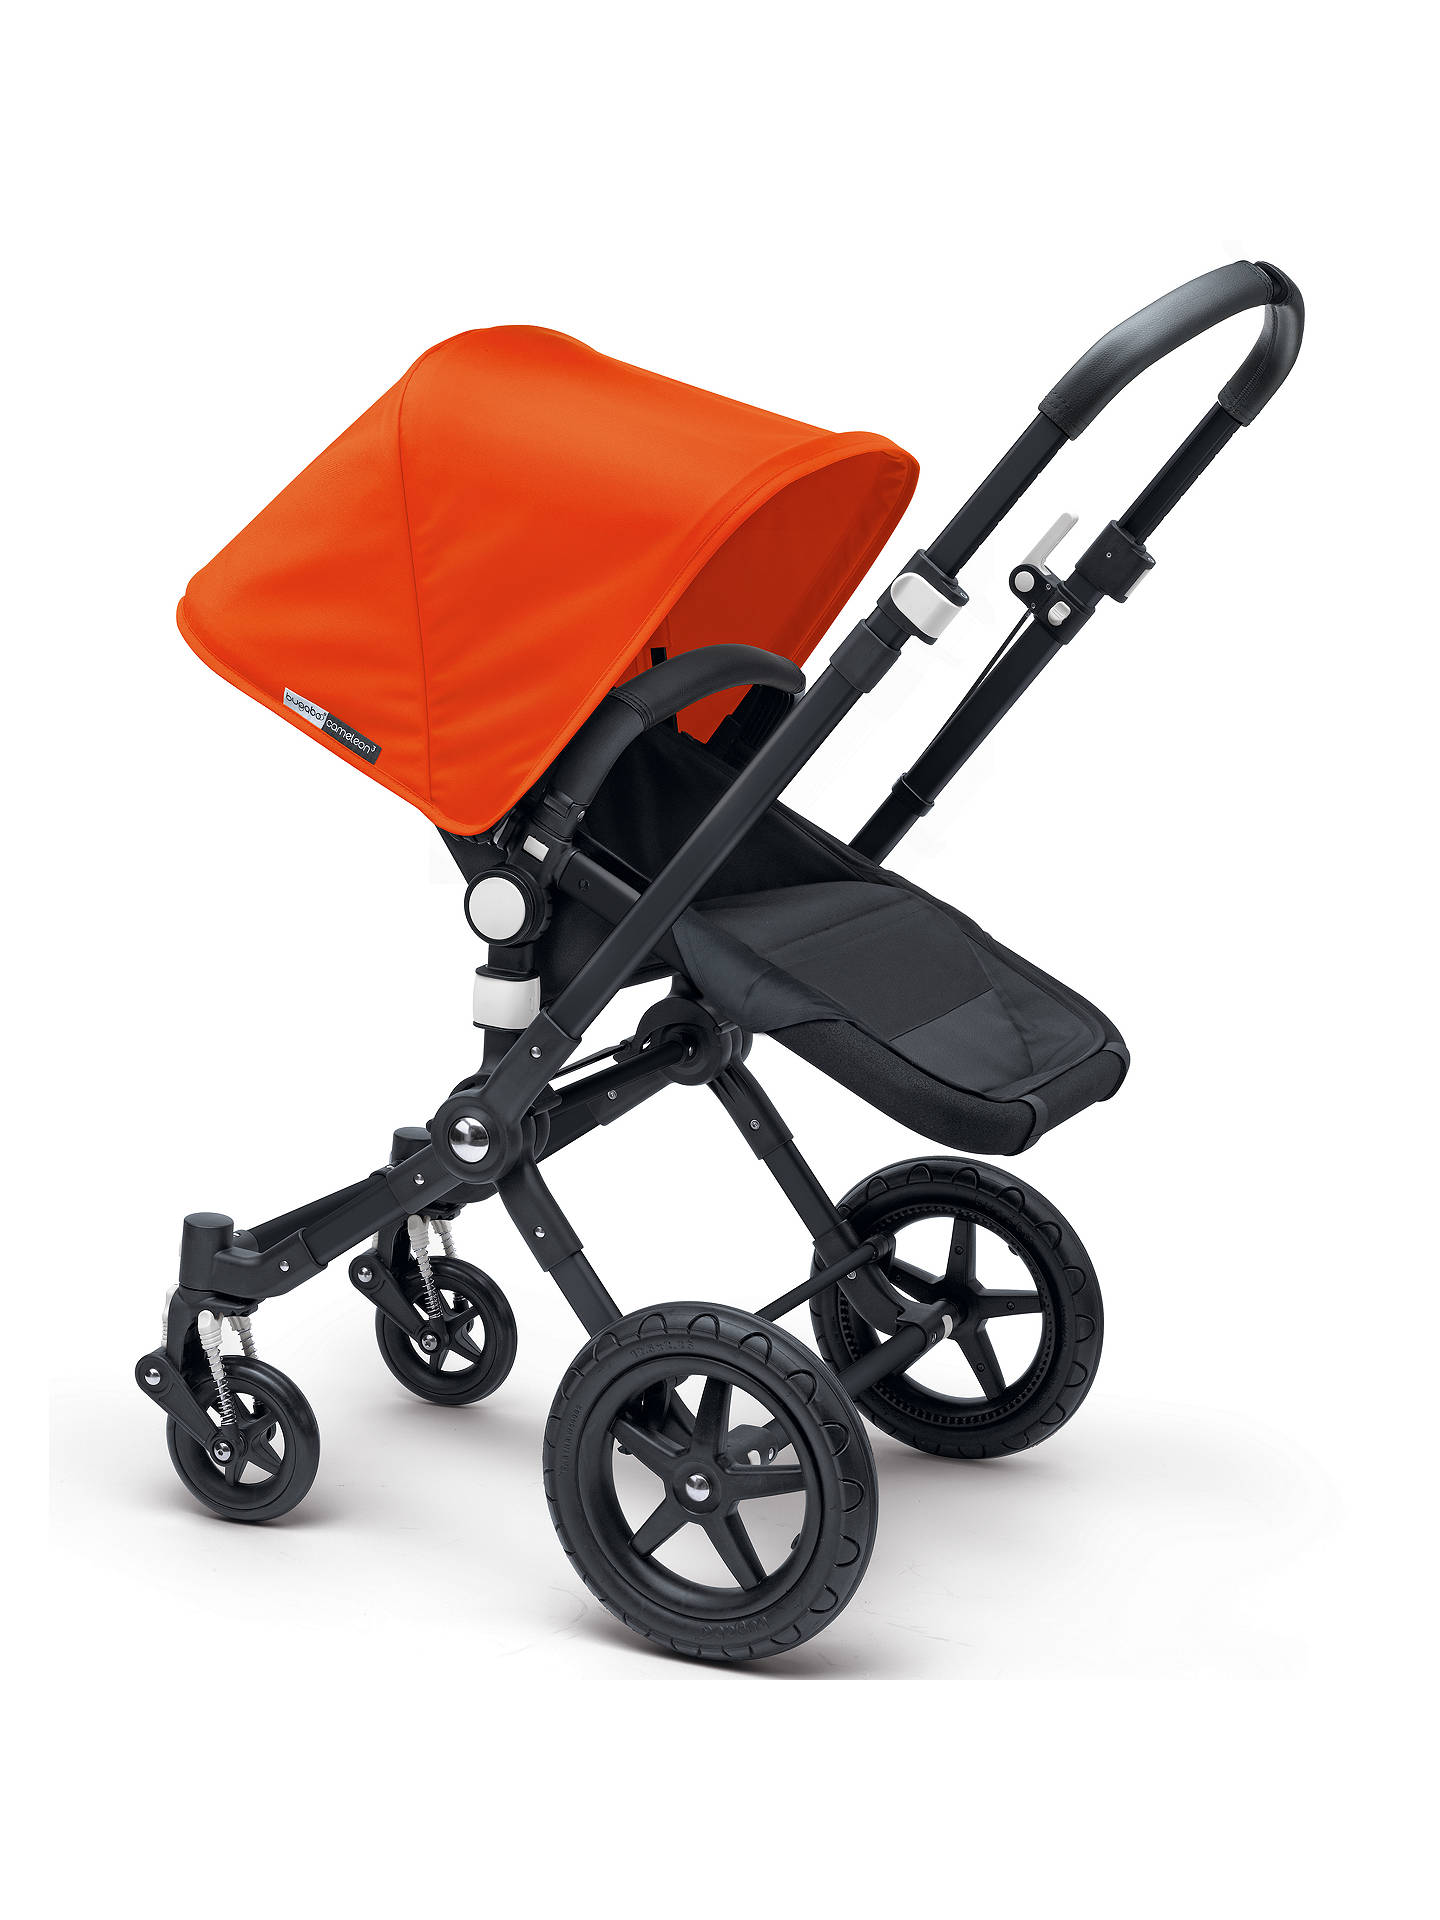 BuyBugaboo Cameleon3 Pushchair Base Unit and Carrycot, Black/Black Online at johnlewis.com